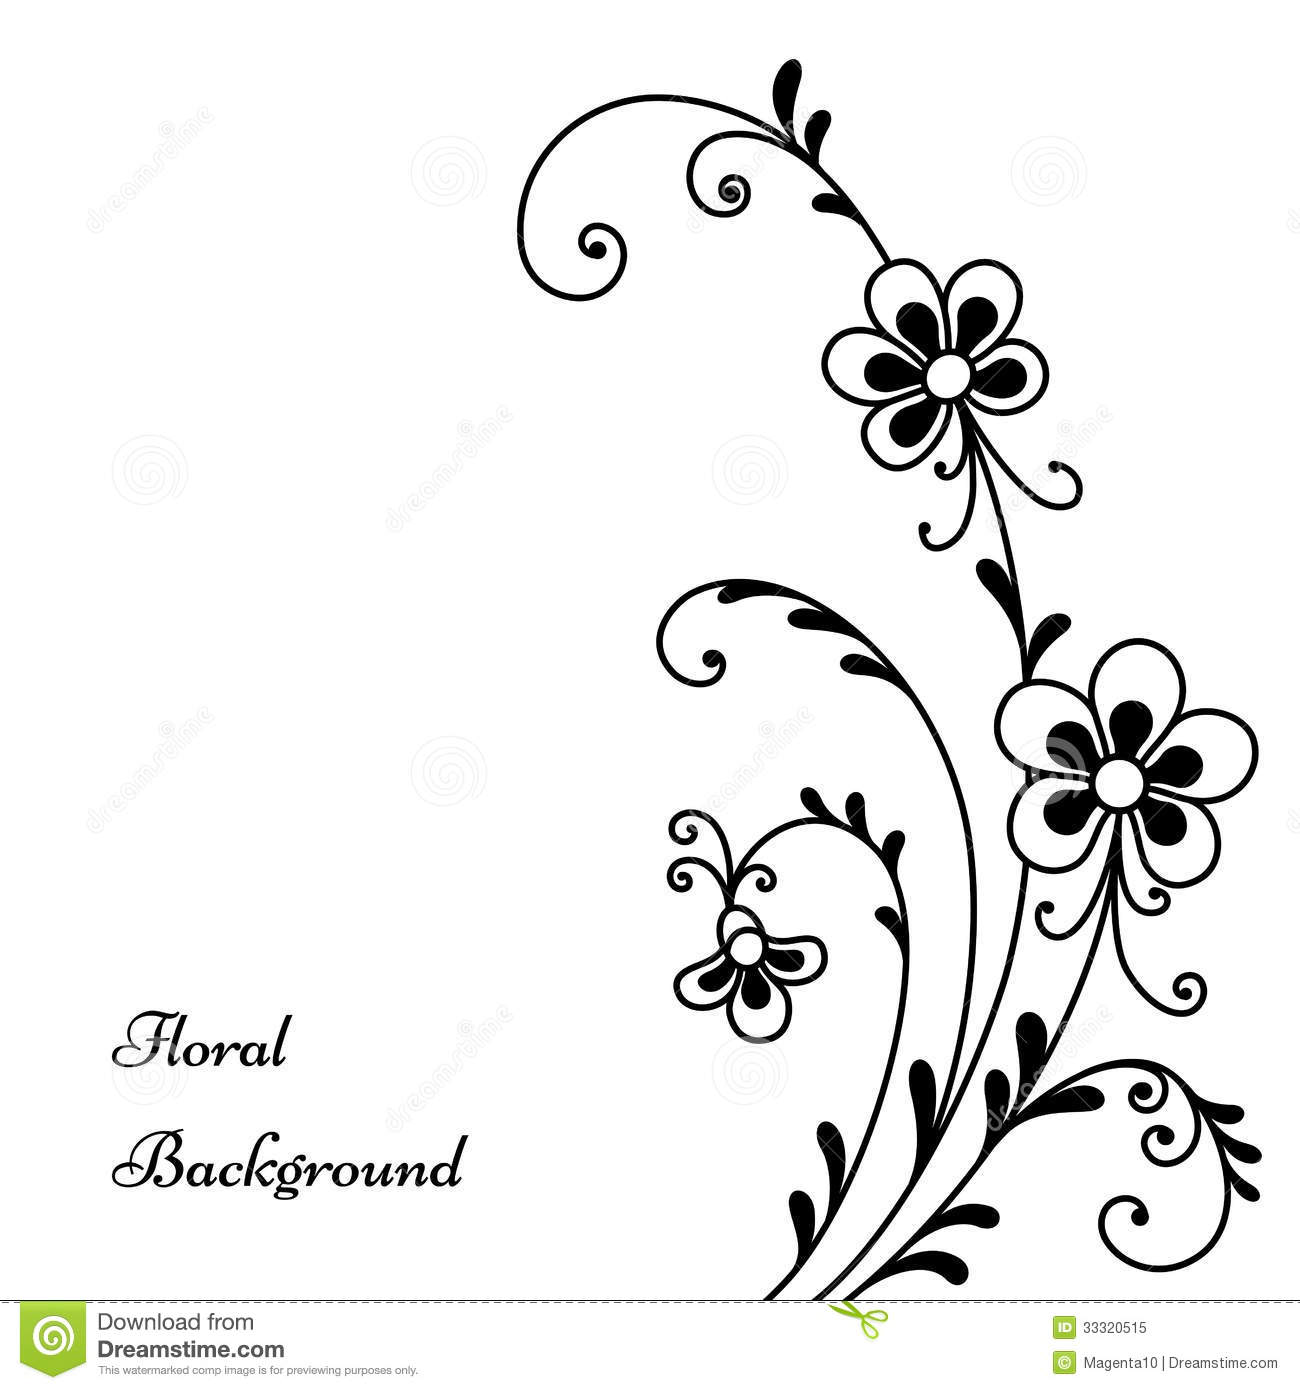 Line Art Card Design : Black flowers on white stock vector illustration of fancy